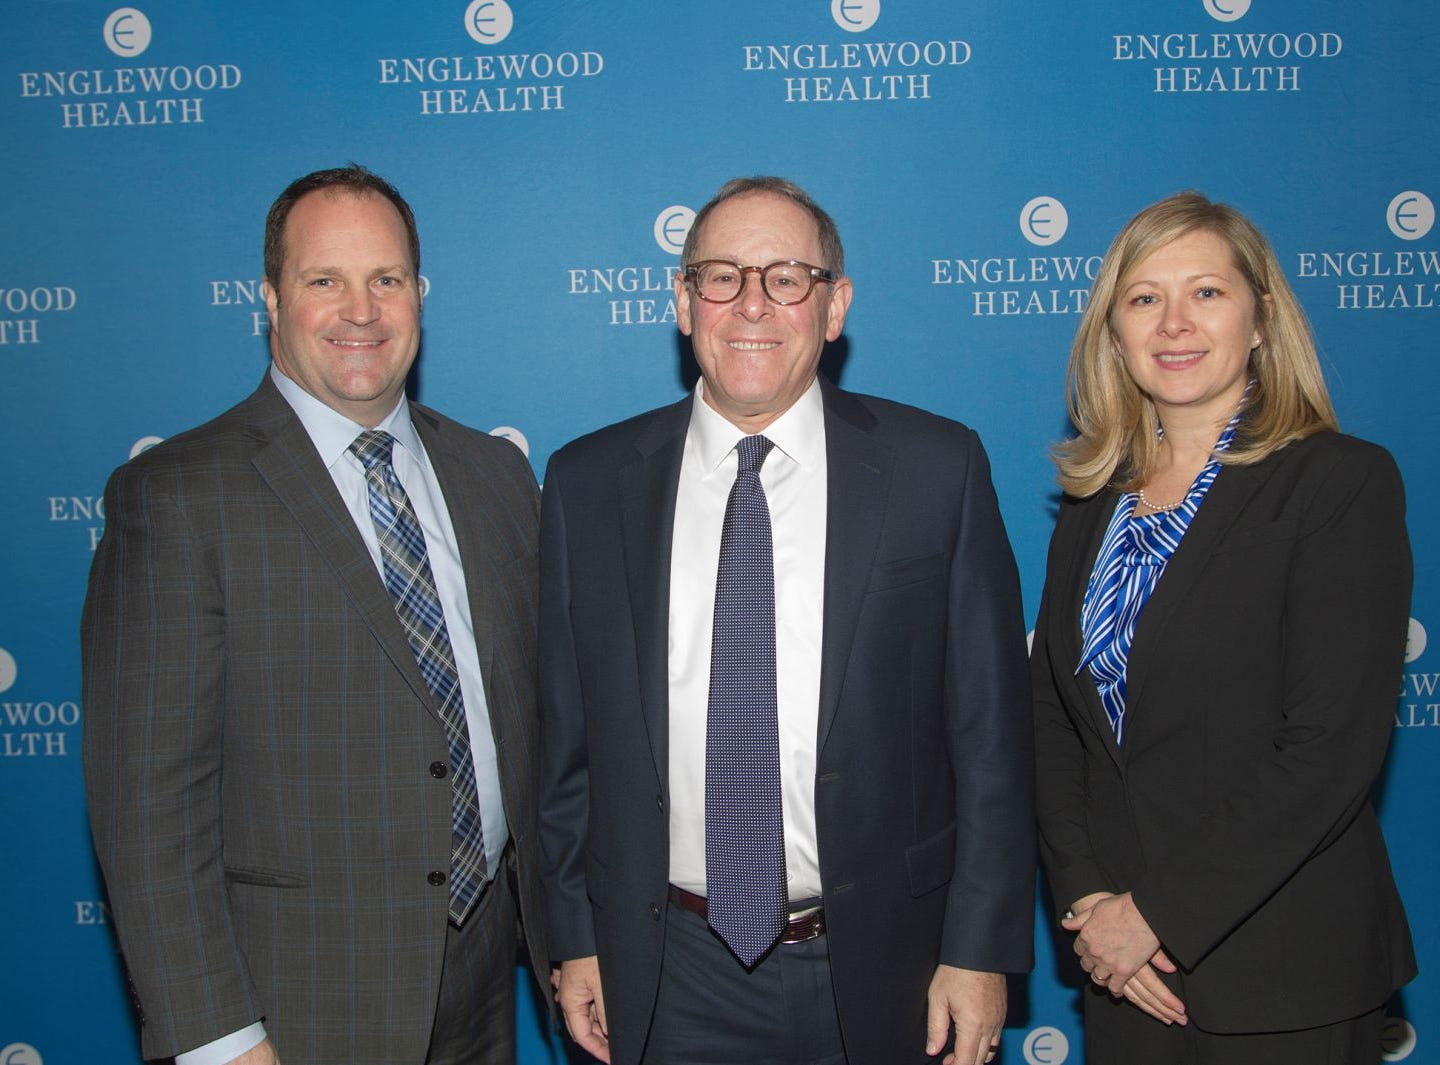 Harvey Weber, Thomas C. Senter, Esq., Chairman of the Englewood Healthcare System and Englewood Hospital and Medical Center, Vicki Hoffman. Englewood Health held its annual Medical Staff Recognition Dinner at Rockliegh Country Club. 01/17/2019